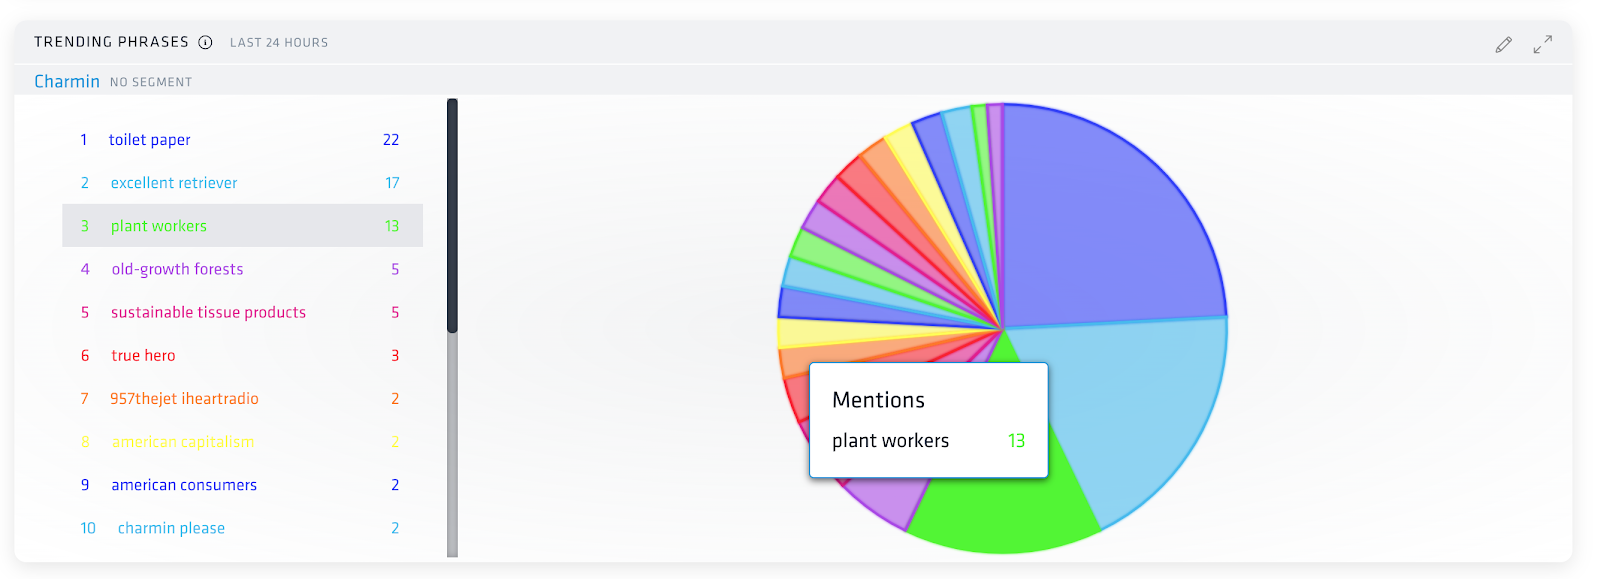 Nuvi's trending phrases dashboard shows the top ten phrases within 24 hours. Plant workers is highlighted and is the third most mentioned phrases. The right side of the image is a list of the phrases, the right hows a pie chart to visually show how many times they are mentioned in relation to each other